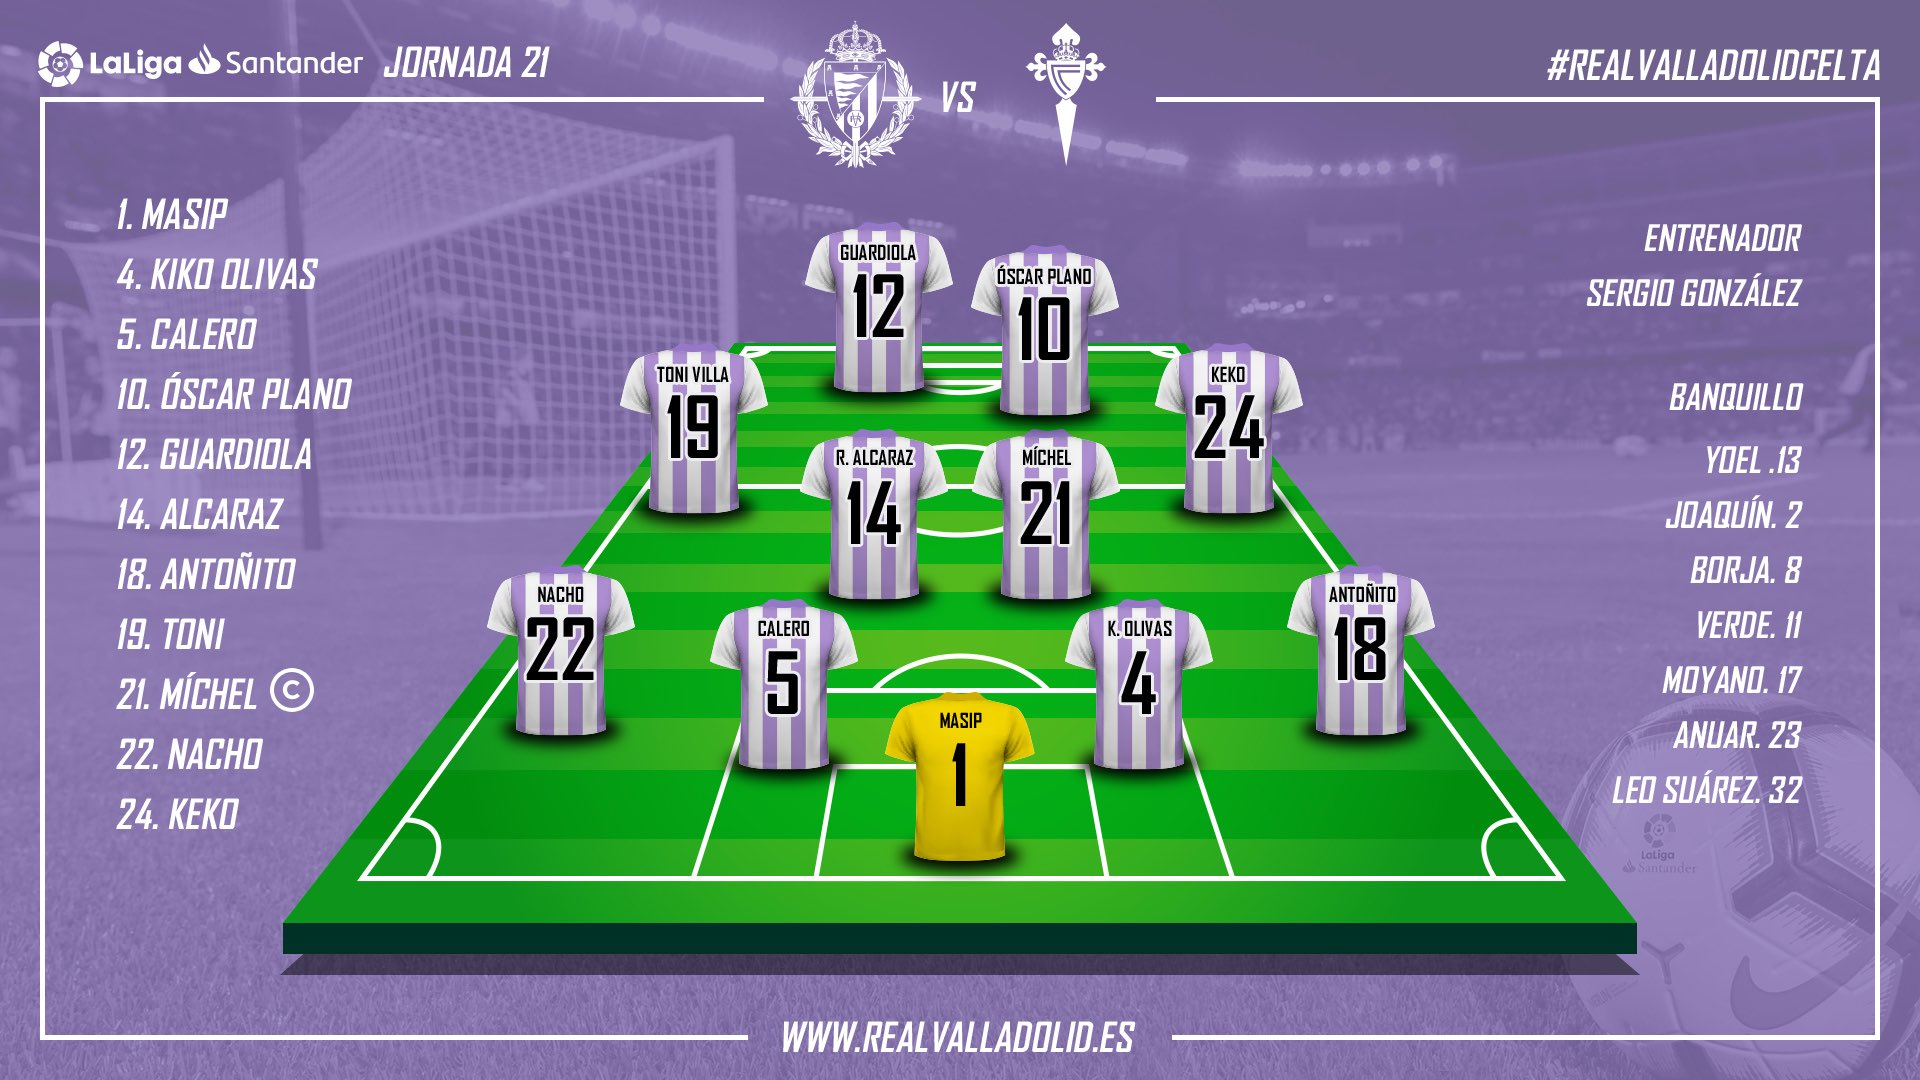 Real Valladolid - Real Club Celta de Vigo. Domingo 27 de Enero. 12:00 IMG-20190127-104432